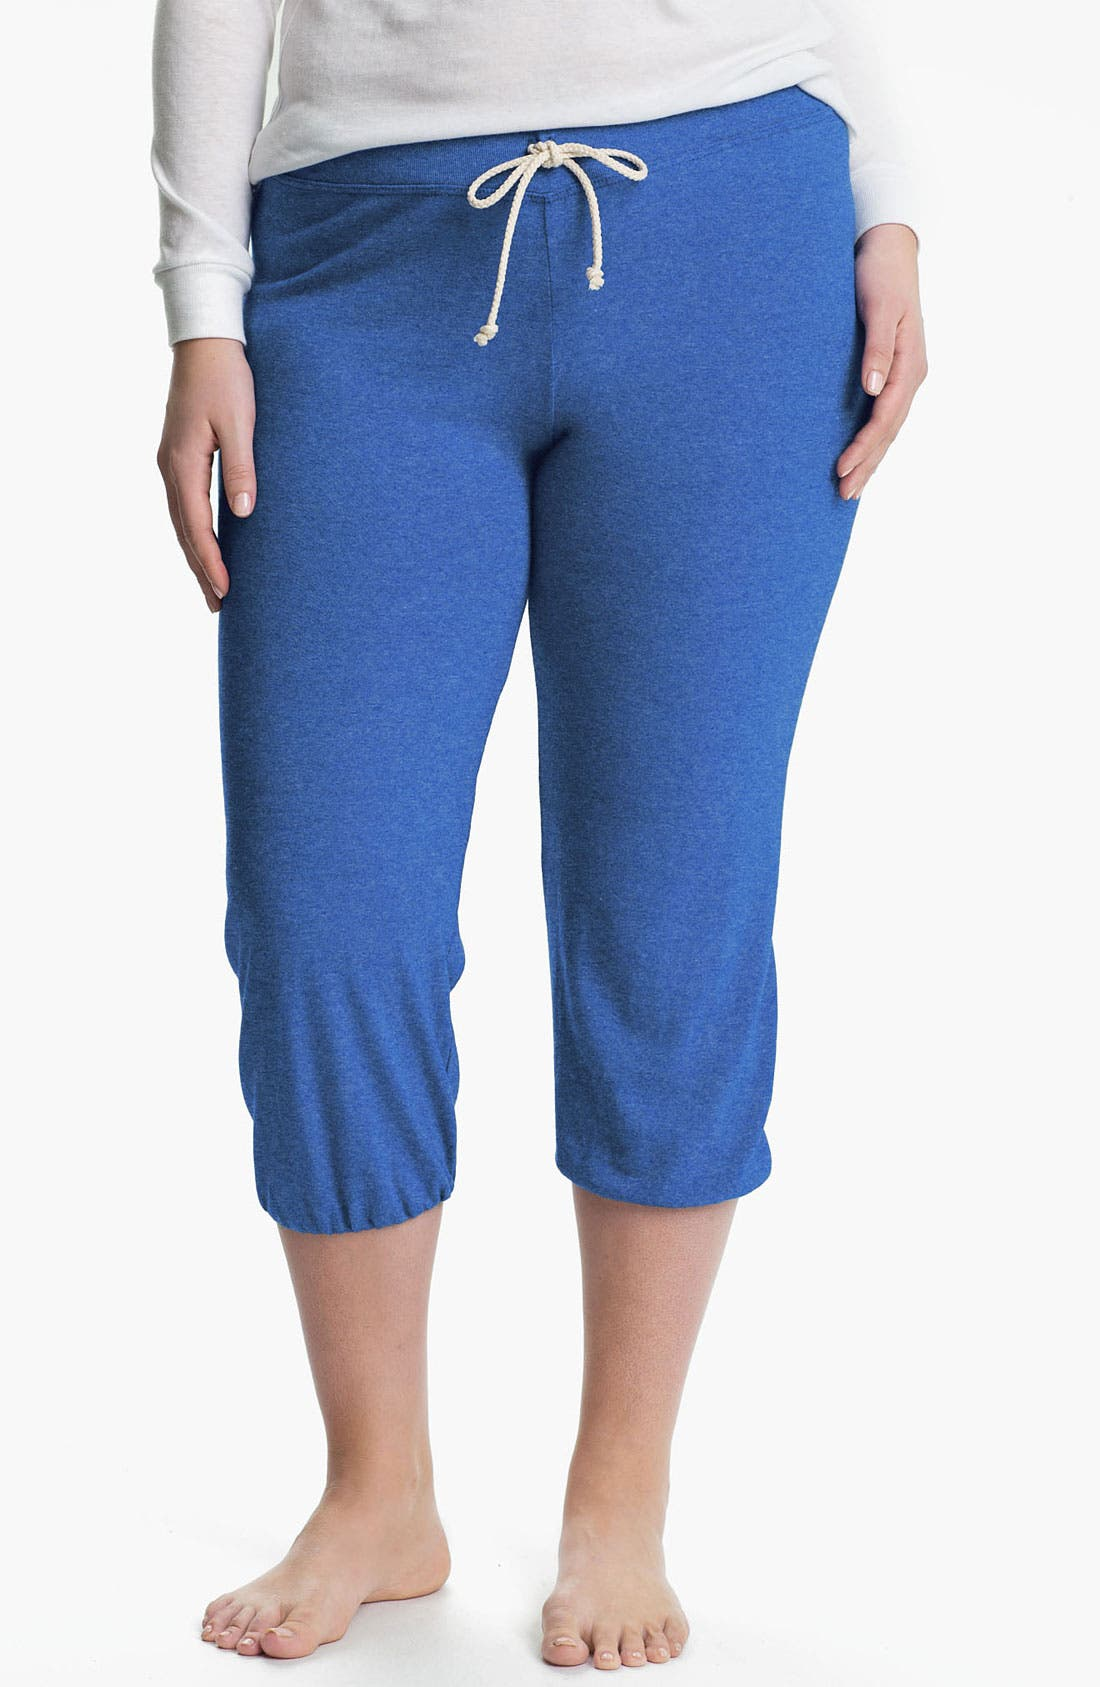 Alternate Image 1 Selected - Nation LTD 'Medora' Capri Sweatpants (Plus)